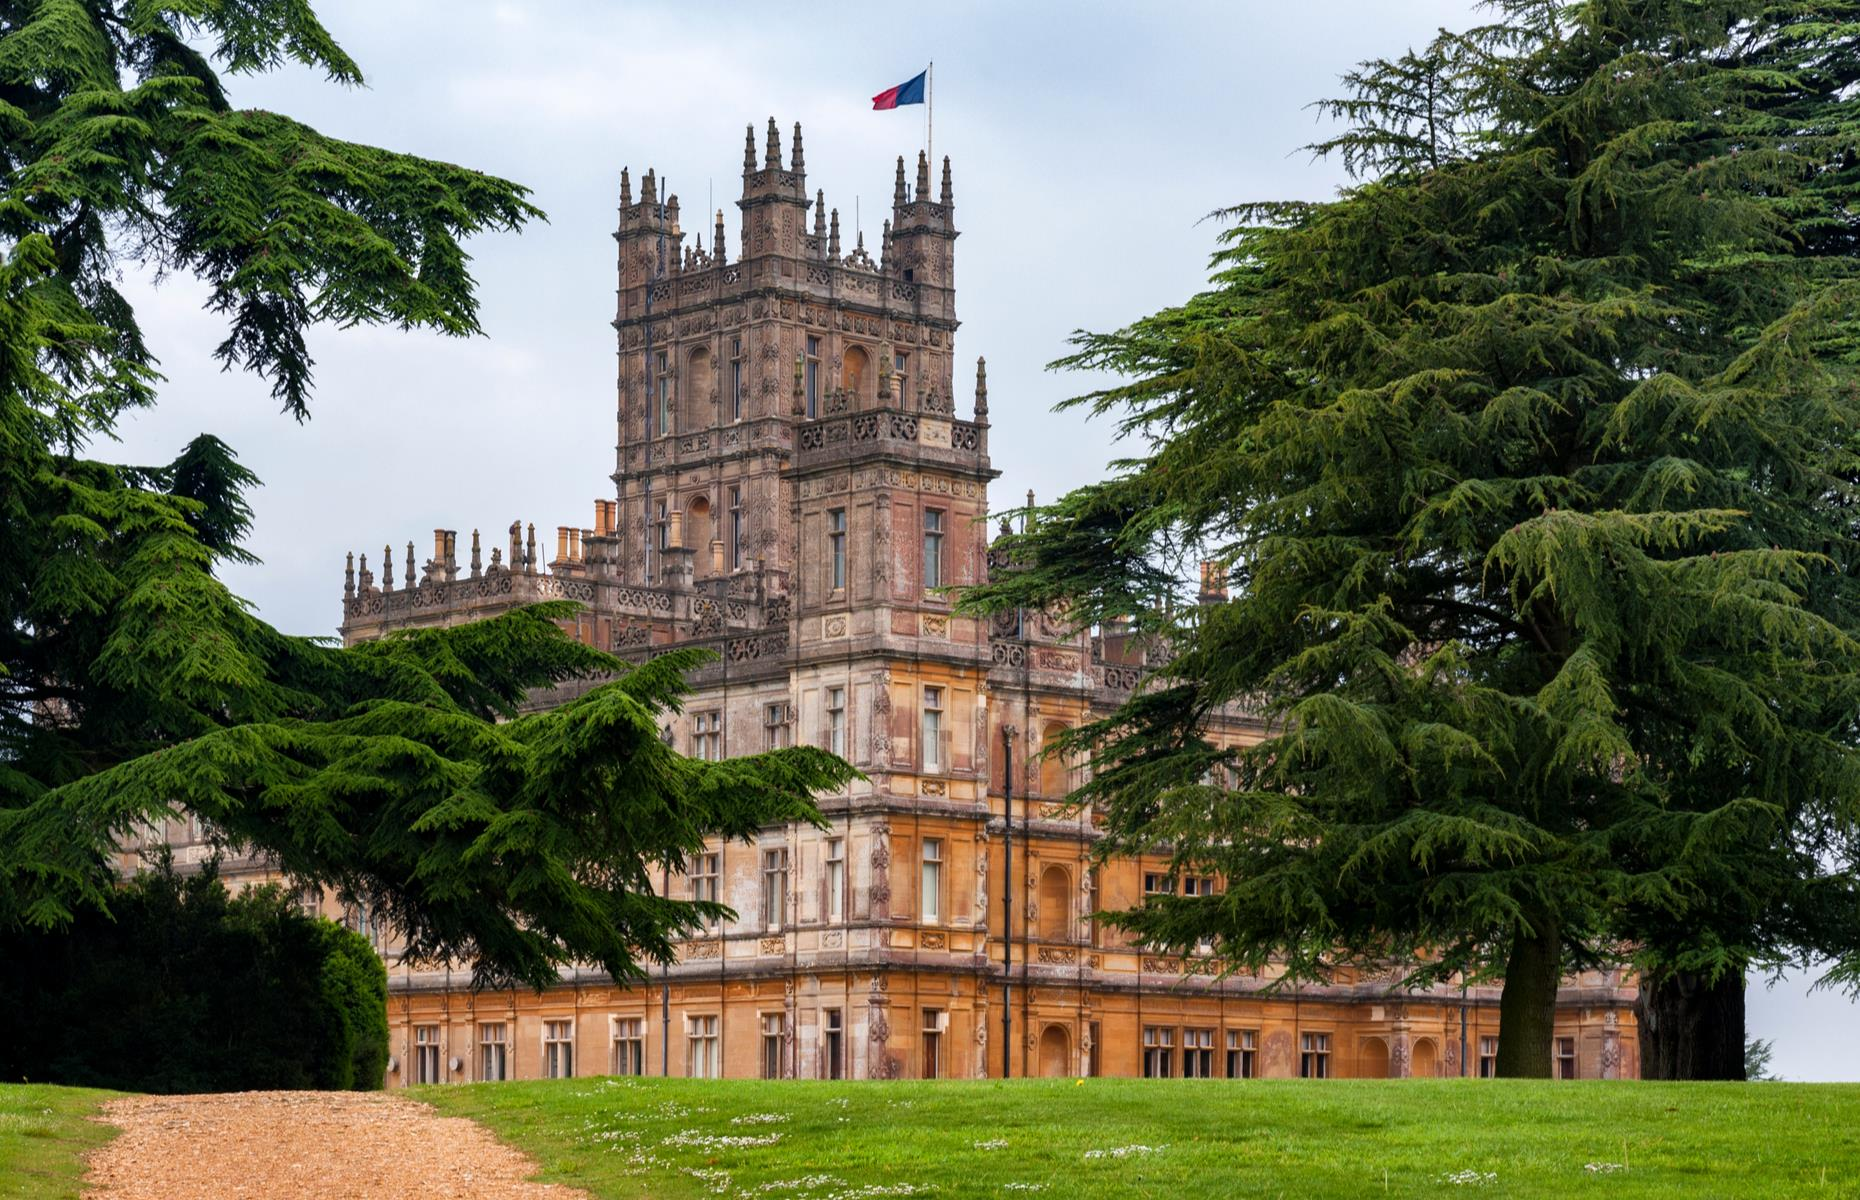 Slide 15 of 53: Downton Abbey is set in a fictional Yorkshire country estate of the same name, but of course the Jacobean Revival-style building does exist in real life. Highclere Castle, used for the exterior shots in the TV series and film, is actually close to the town of Newbury, Berkshire.